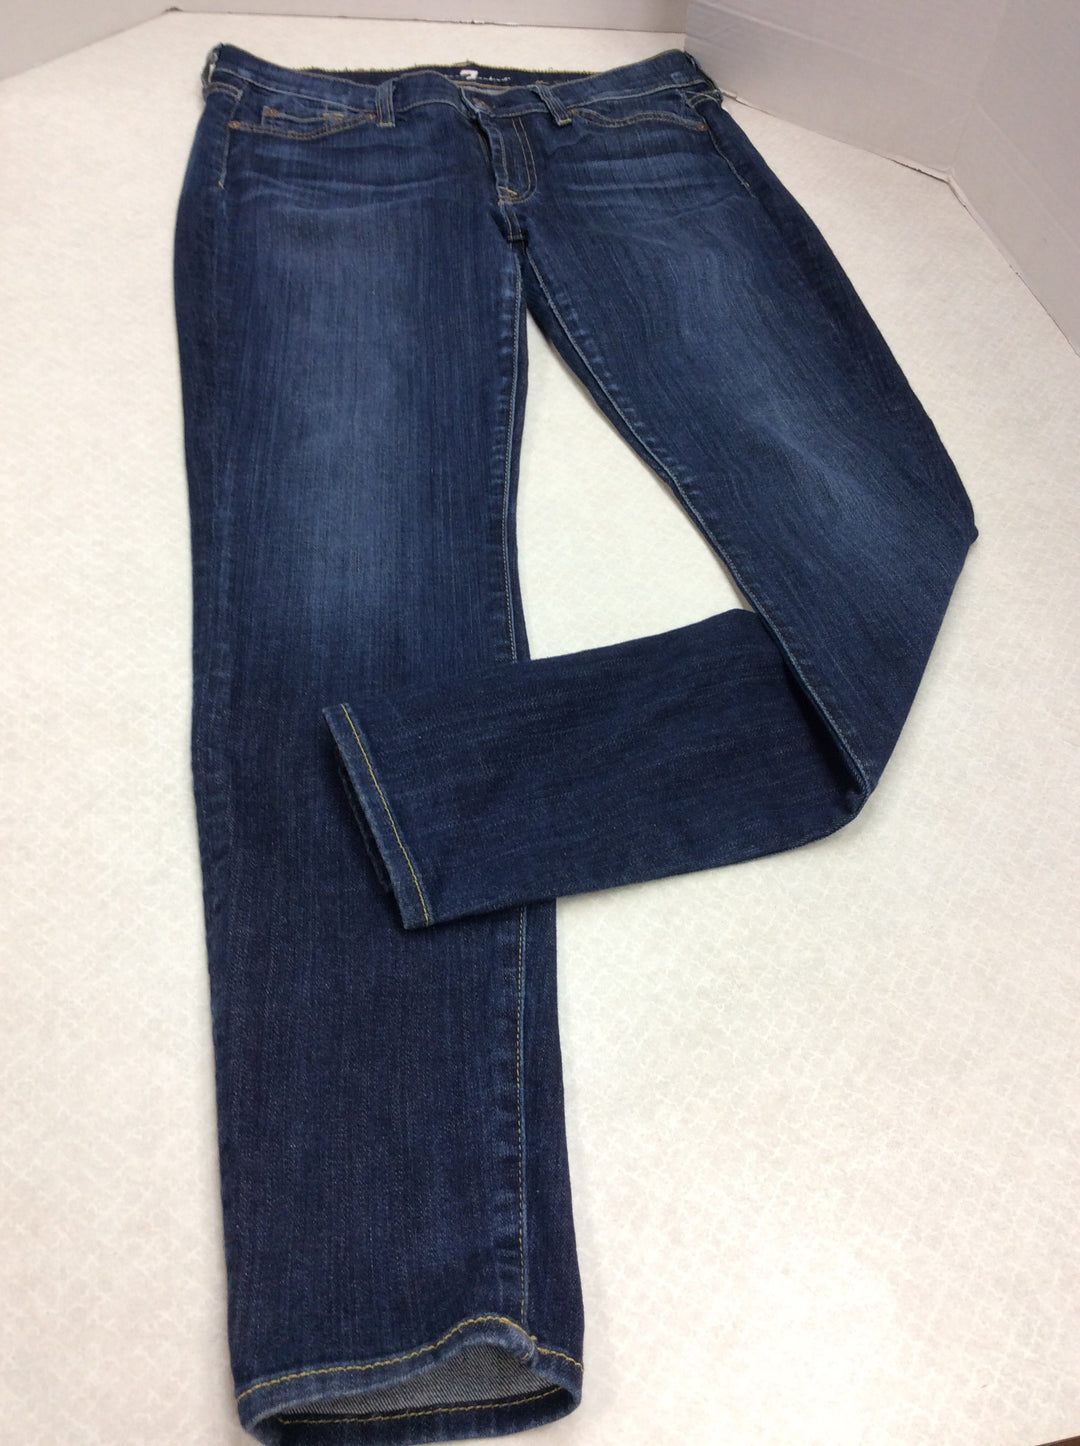 Primary Photo - BRAND: SEVEN FOR ALL MANKIND <BR>STYLE: JEANS DESIGNER <BR>COLOR: DENIM <BR>SIZE: 6 <BR>SKU: 133-13341-42734